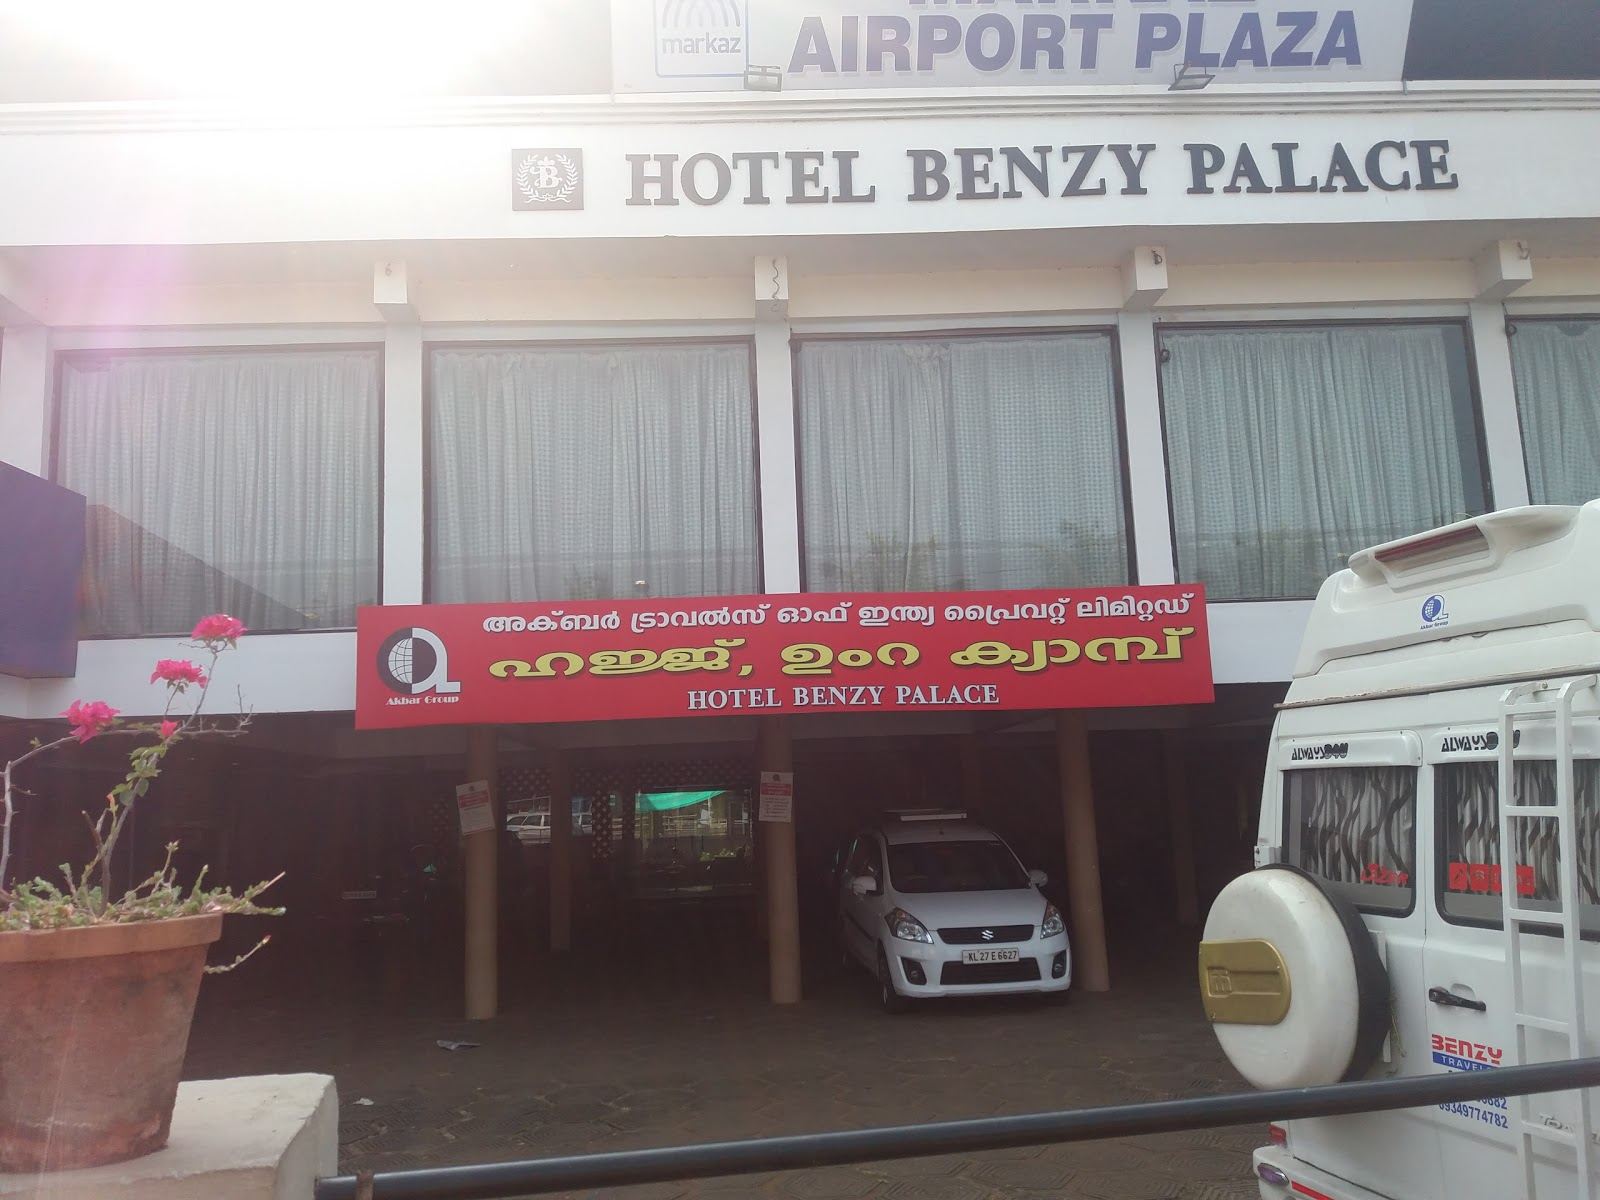 Hotel Benzy Palace Calicut International Airport Kerala Around Guides